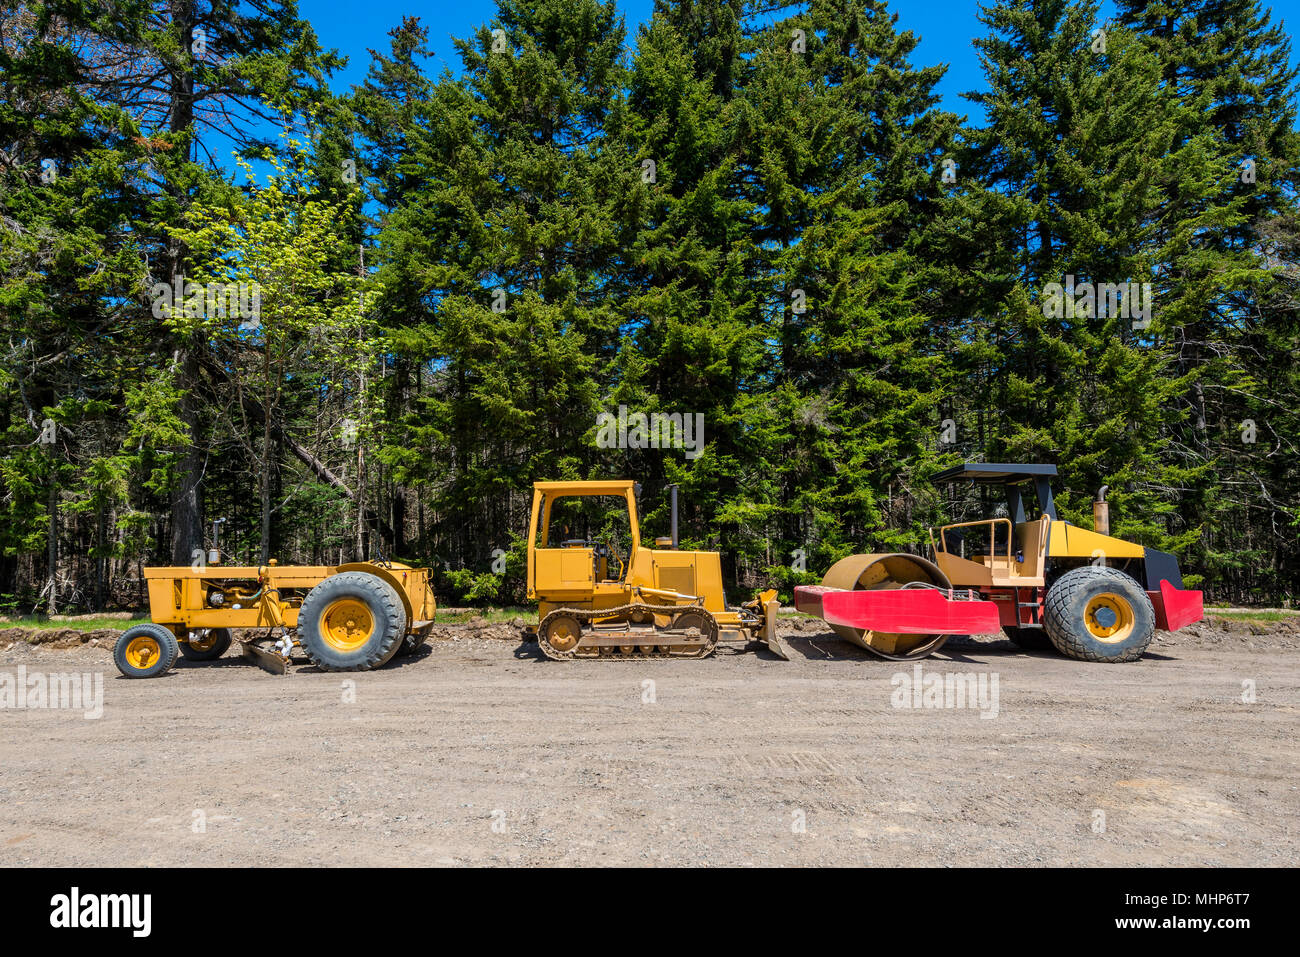 Earth Movers at Road Contruction Site in Forest - Stock Image